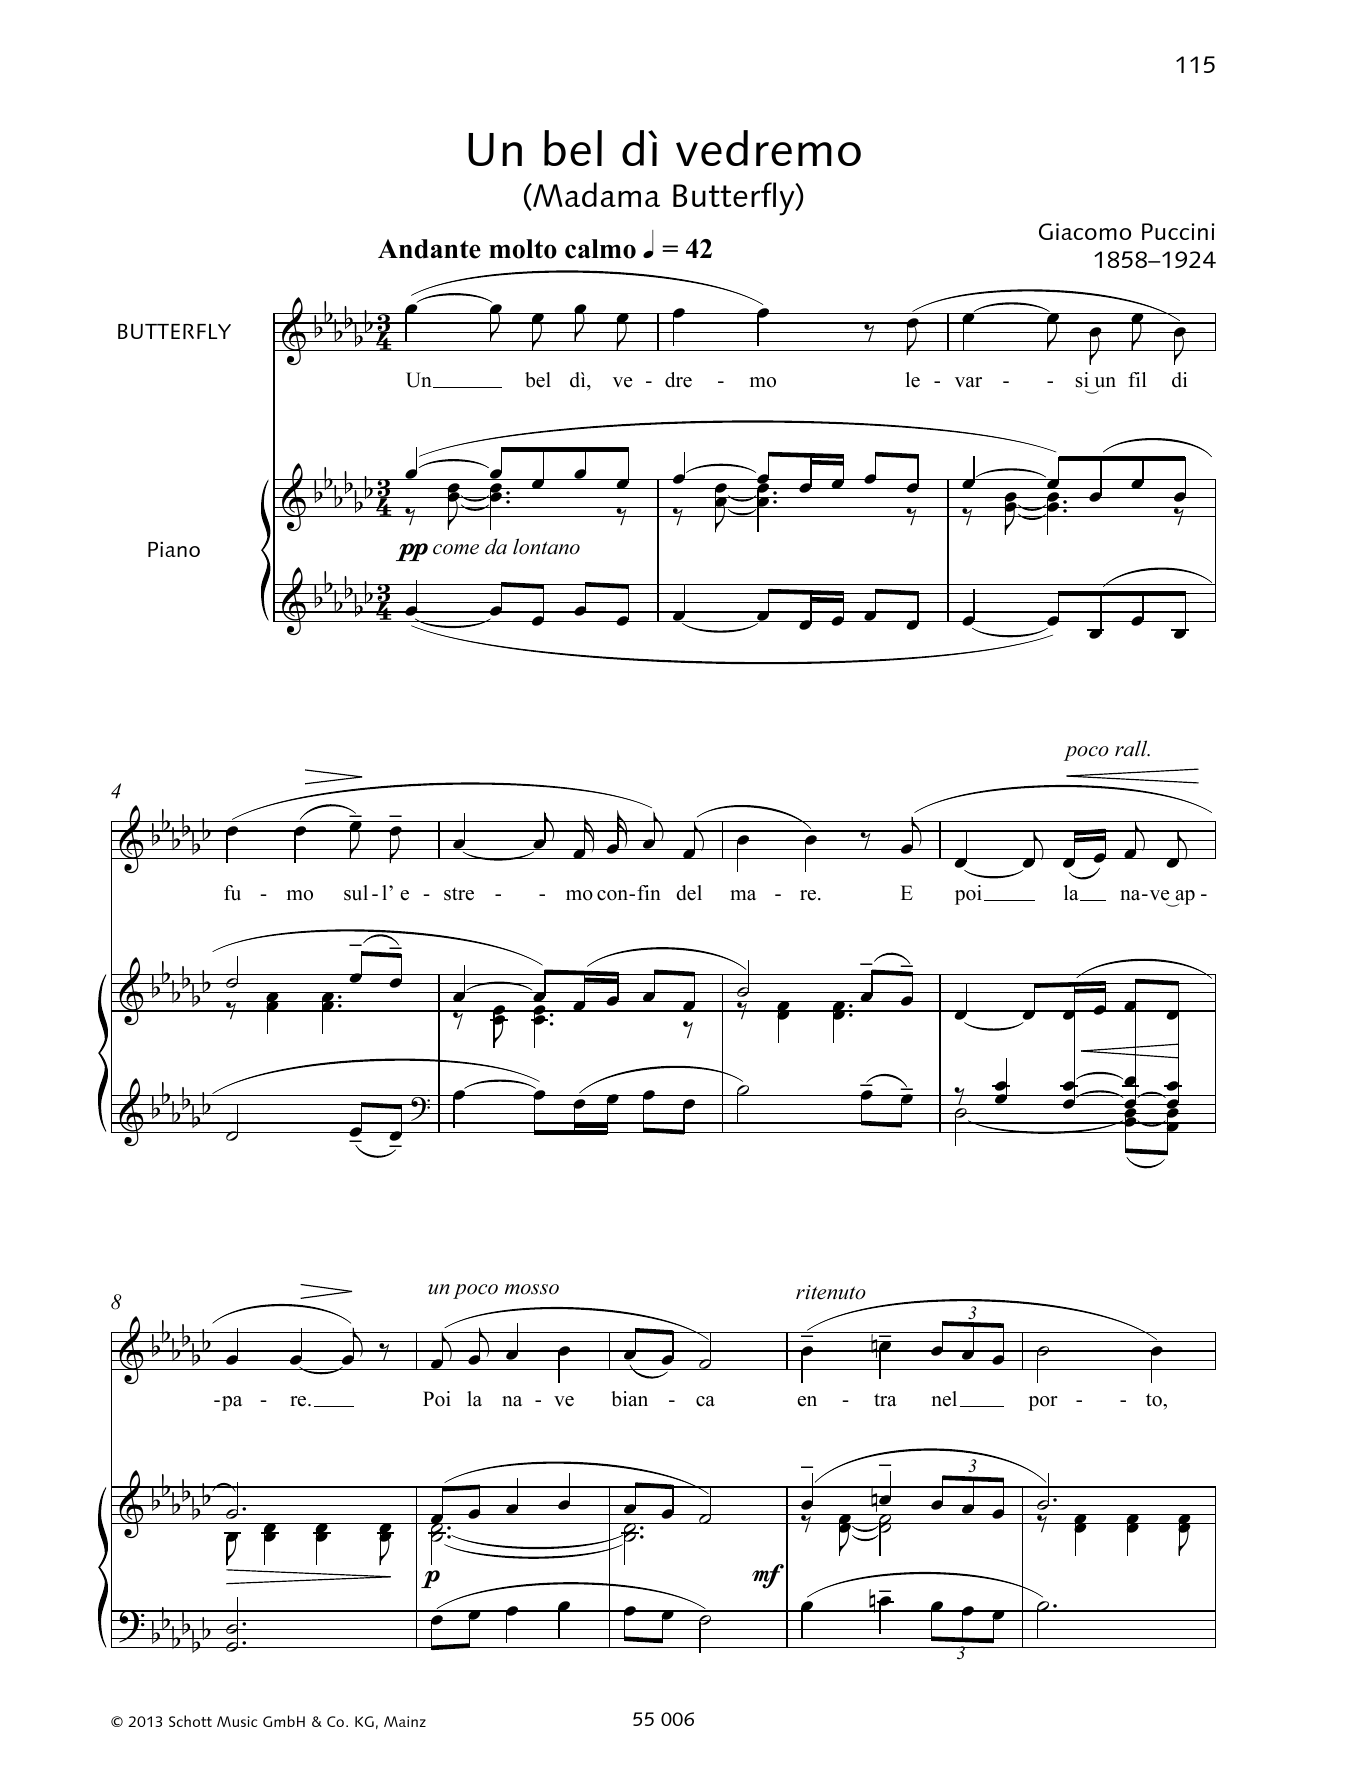 Un Bel Di Vedremo Sheet Music